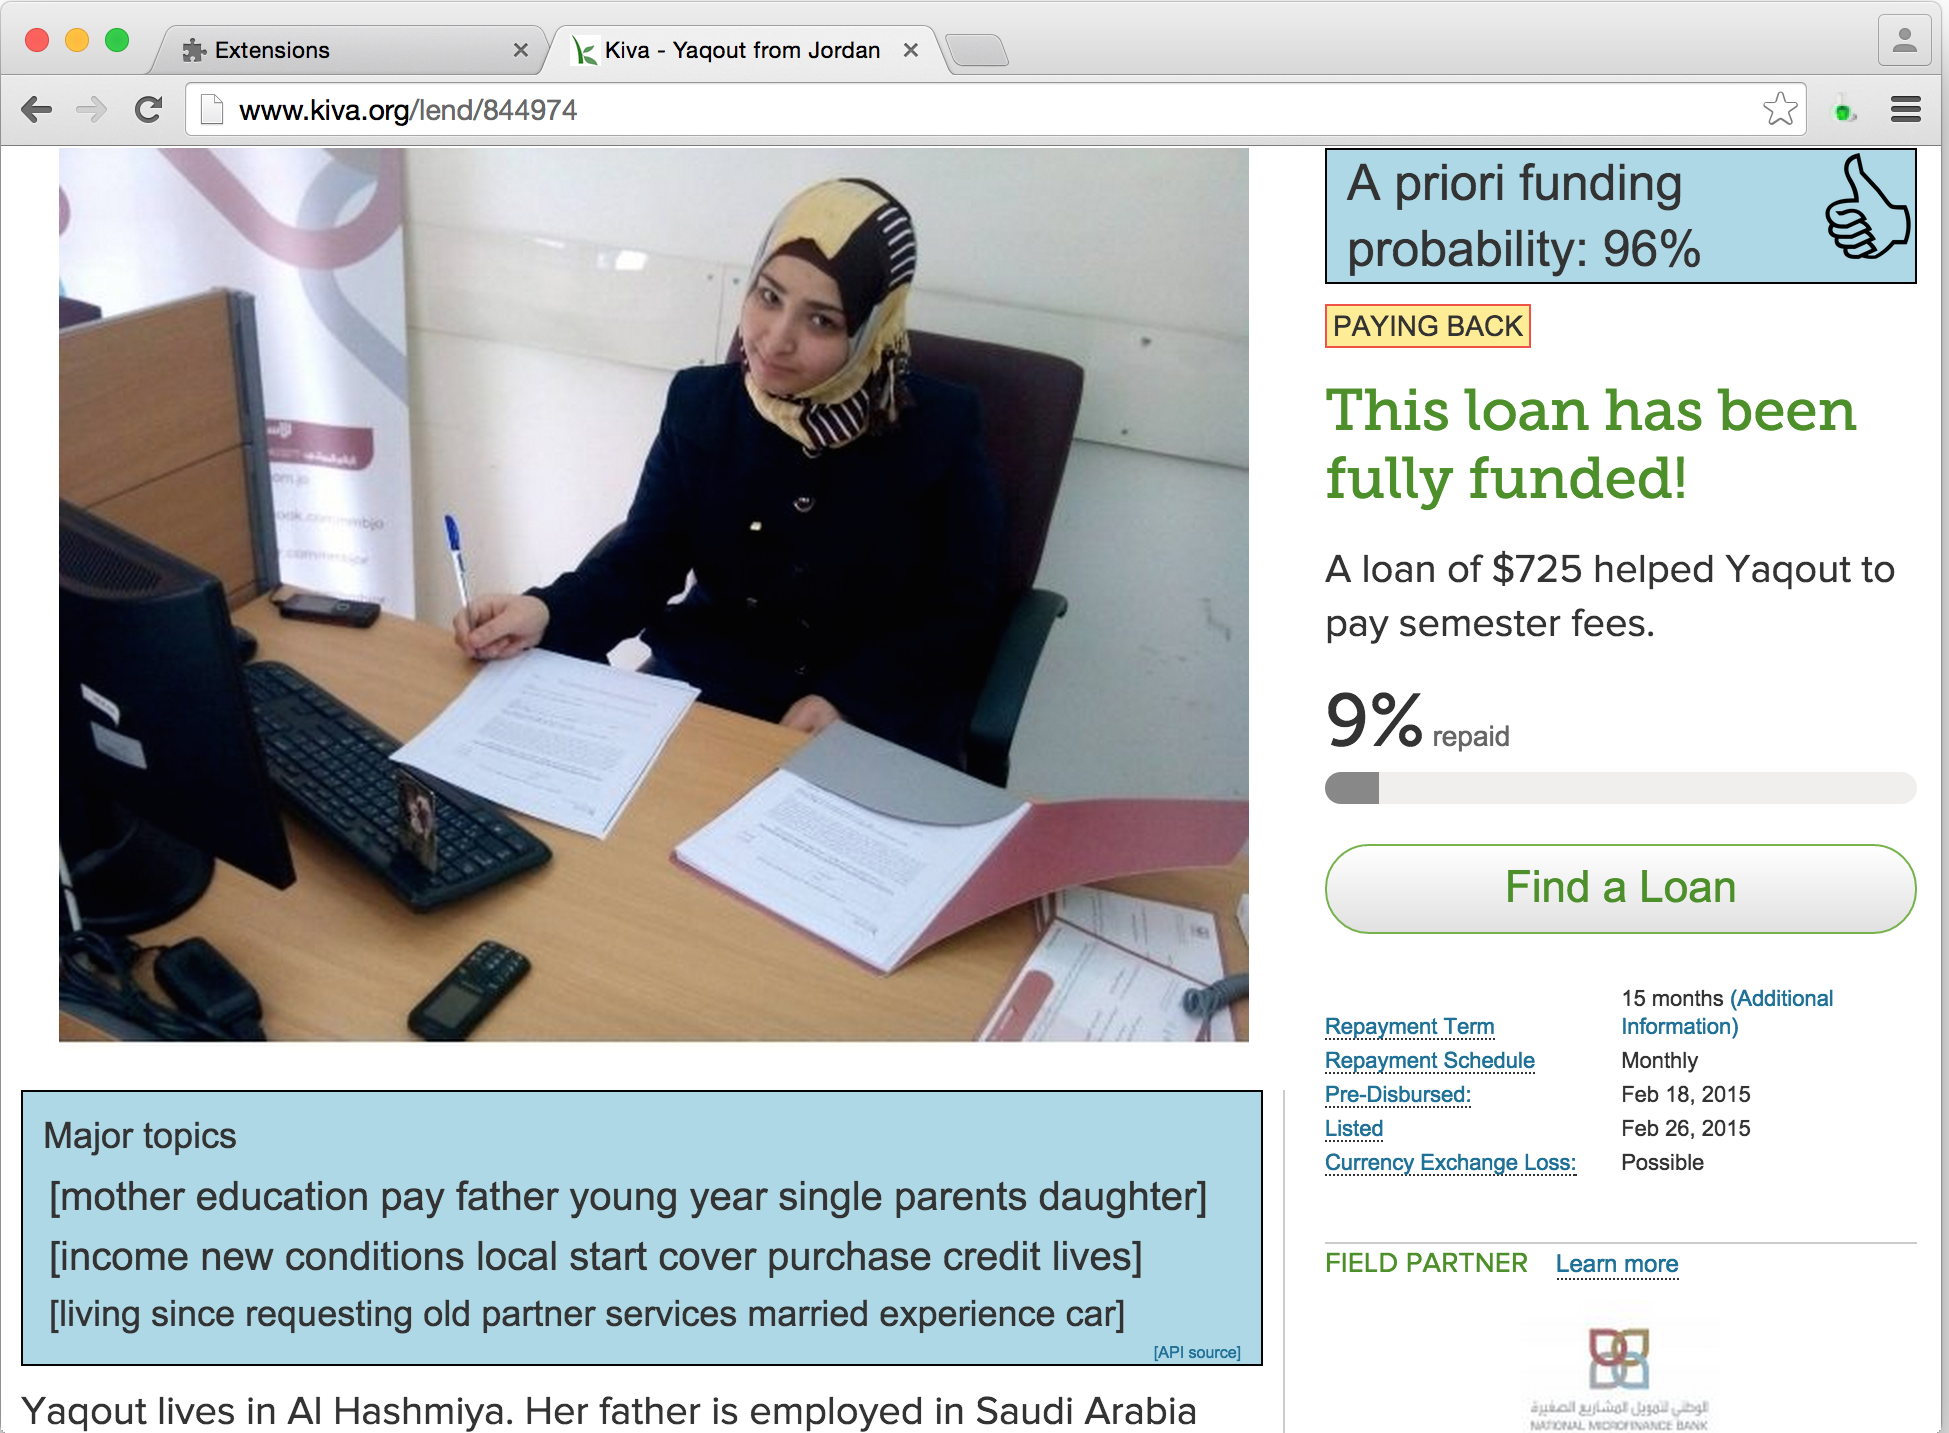 An end-to-end loan funding predictor for kiva org – Frederik